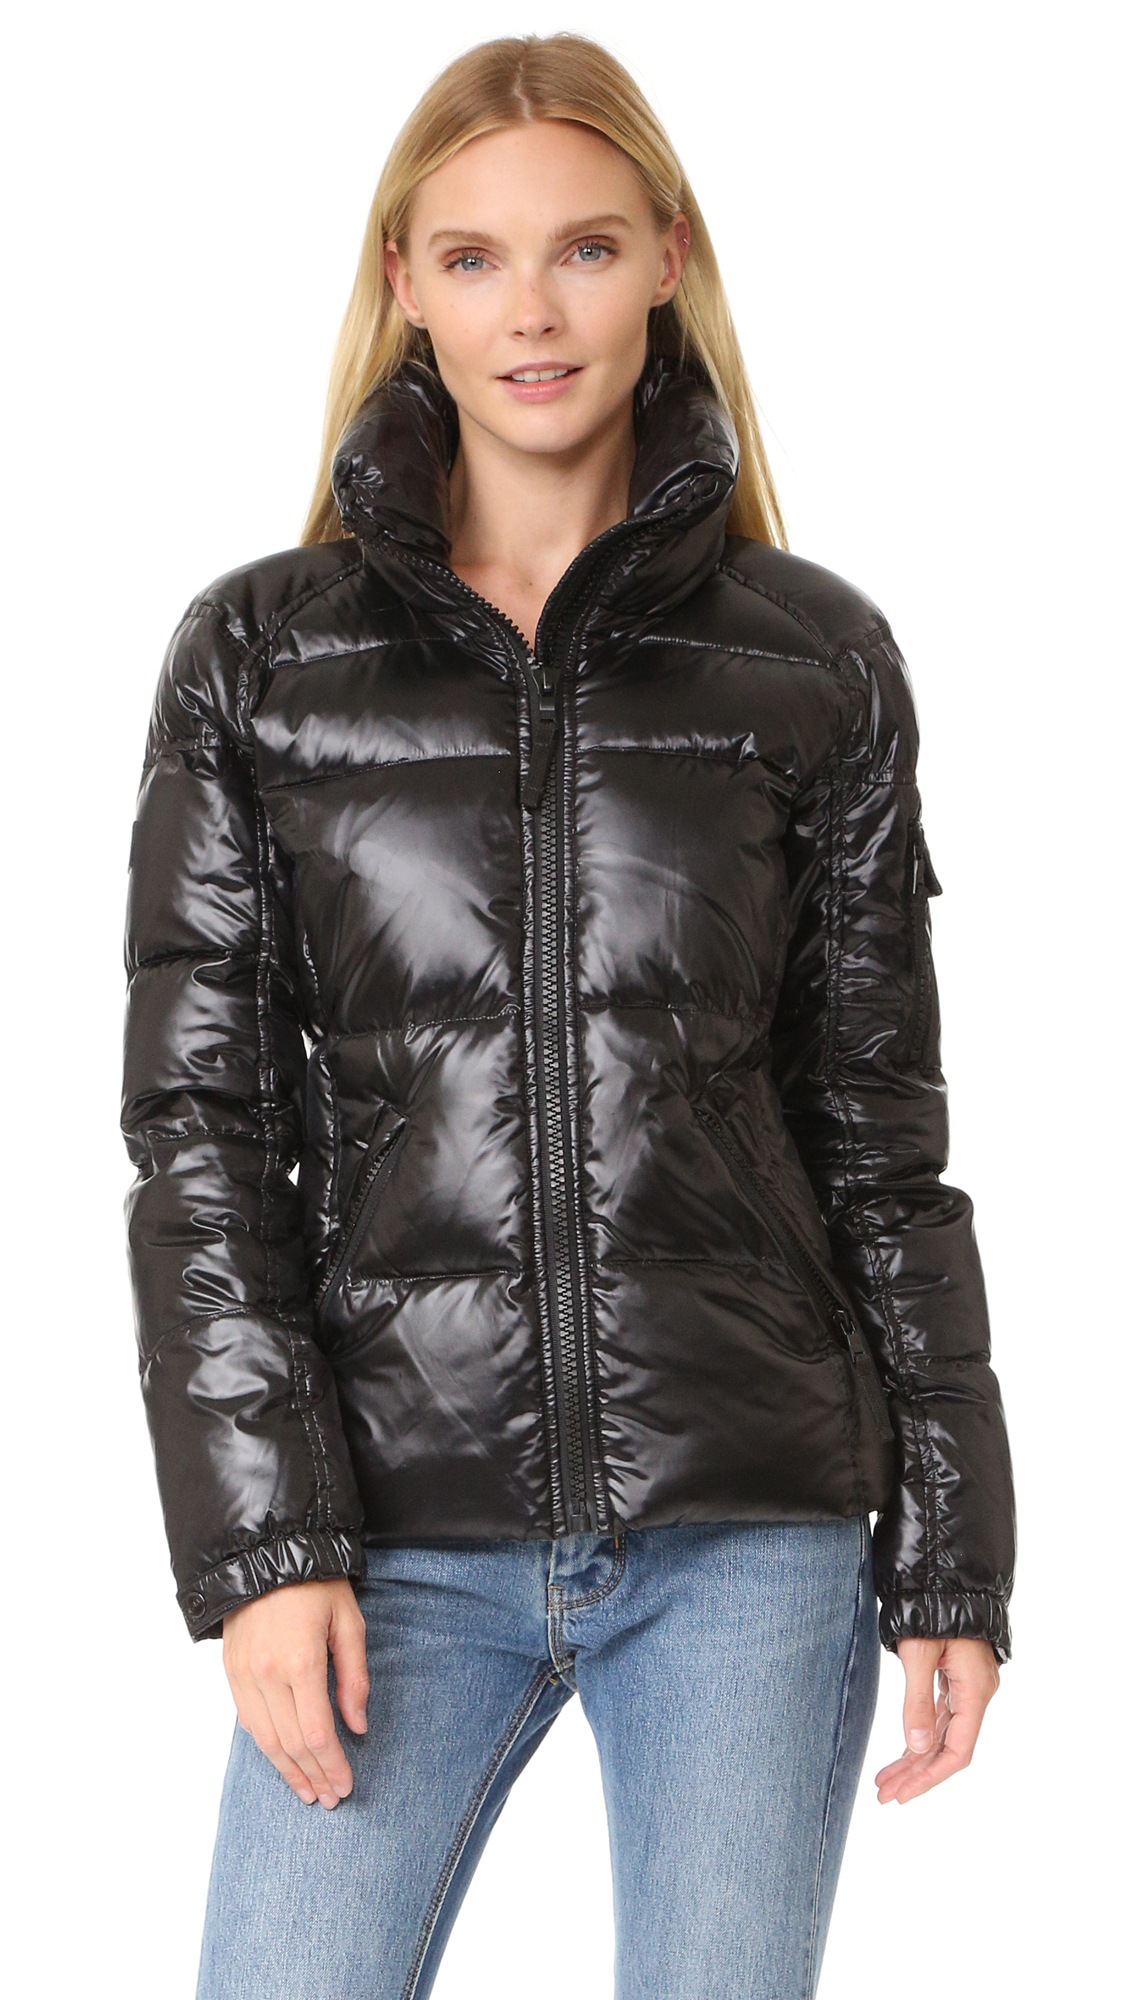 Sam Freestyle Jacket Lyst